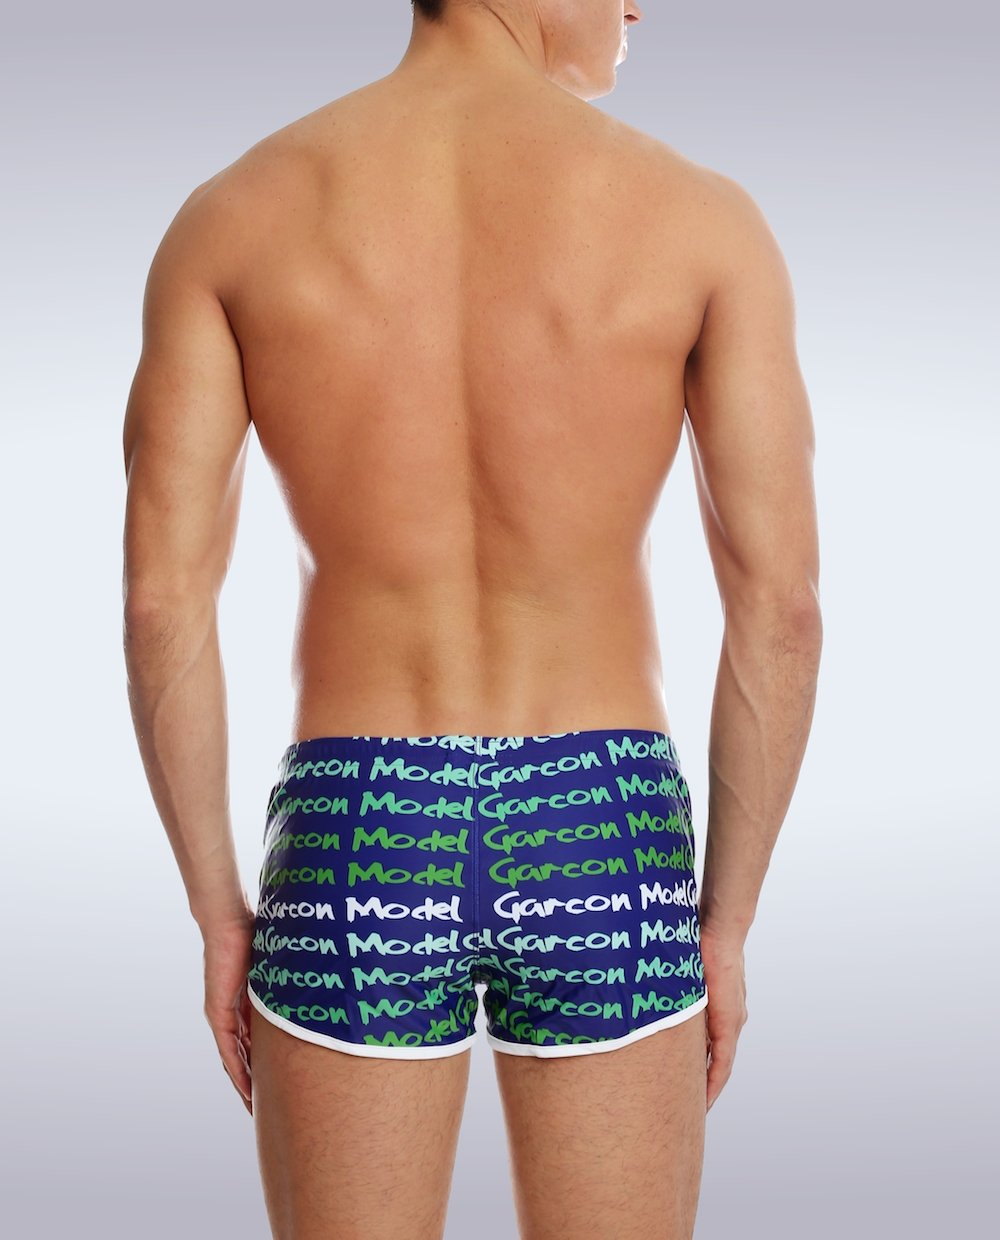 Navy Graffiti Swim Short - Garçon Underwear sexy men's underwear Swim Short Garçon Underwear